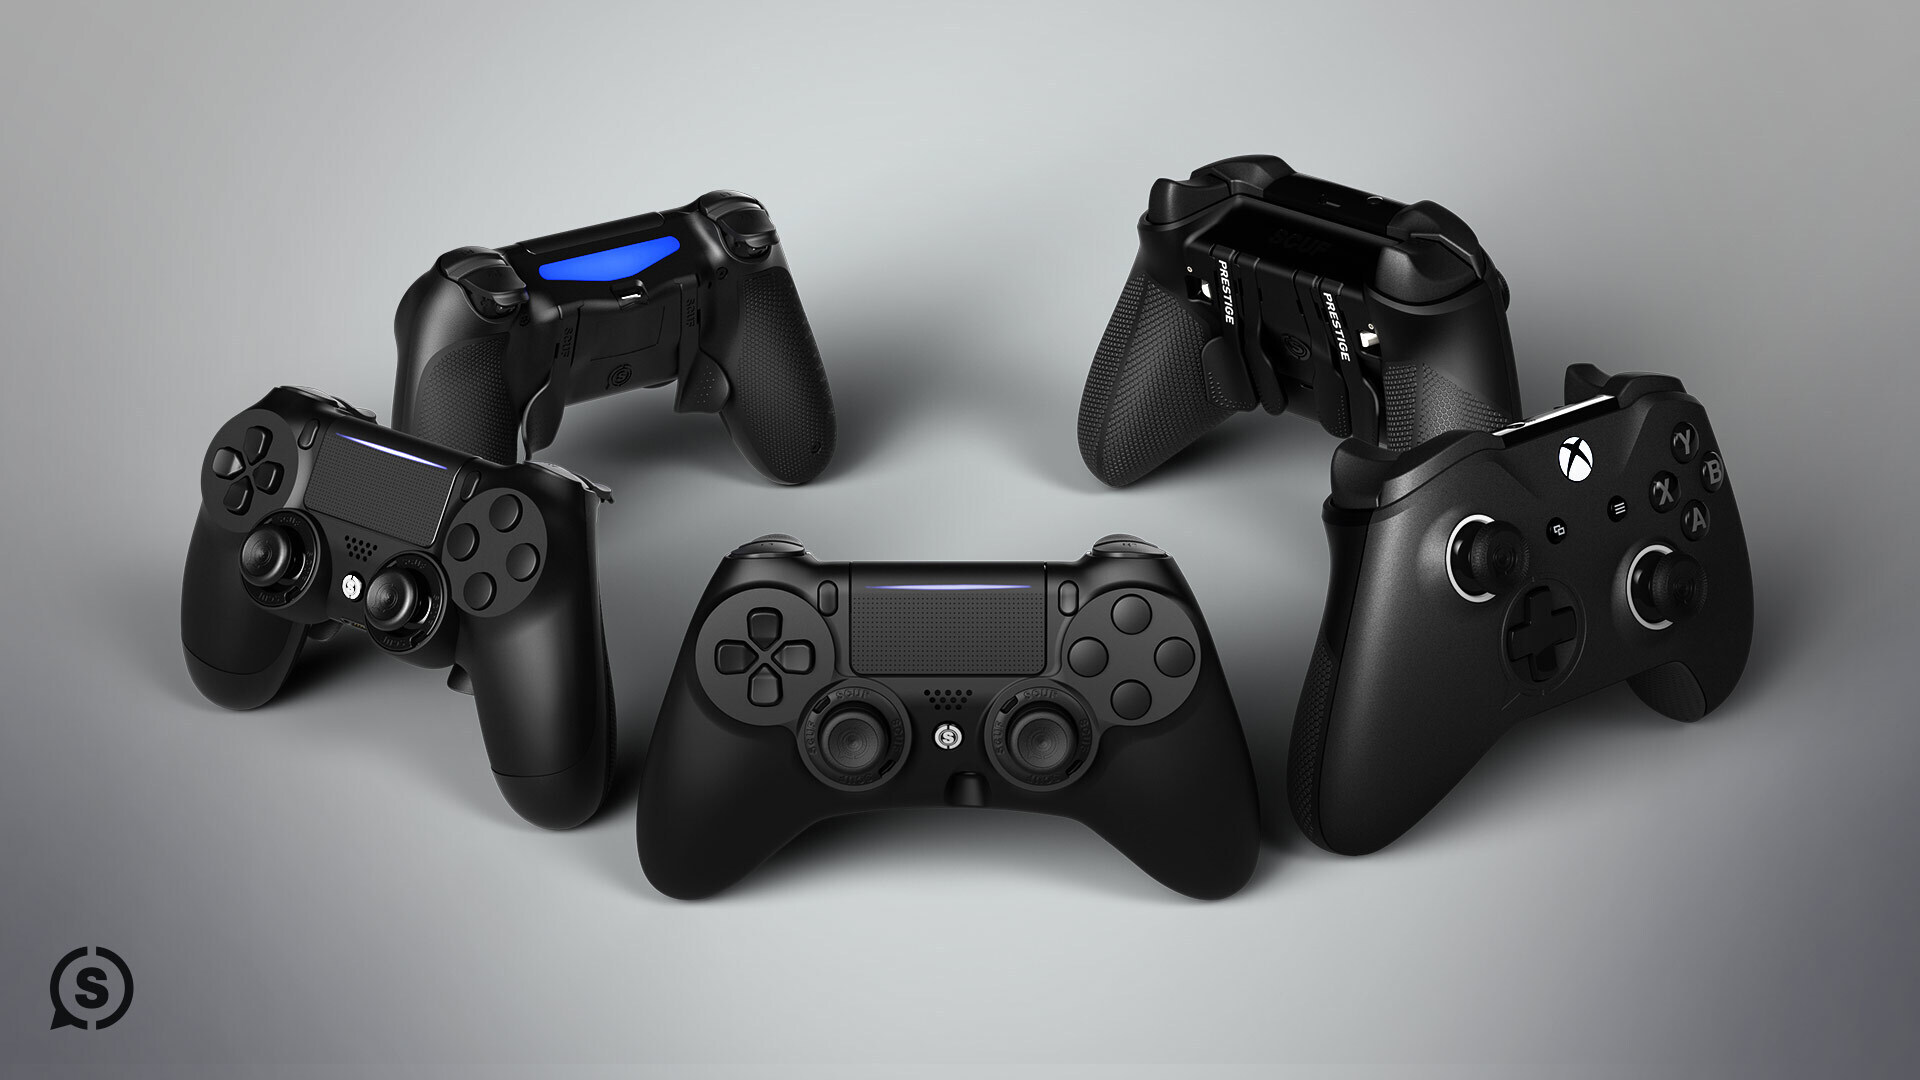 CUSTOM SCUF CONTROLLERS FOR PS4, XBOX ONE AND PC